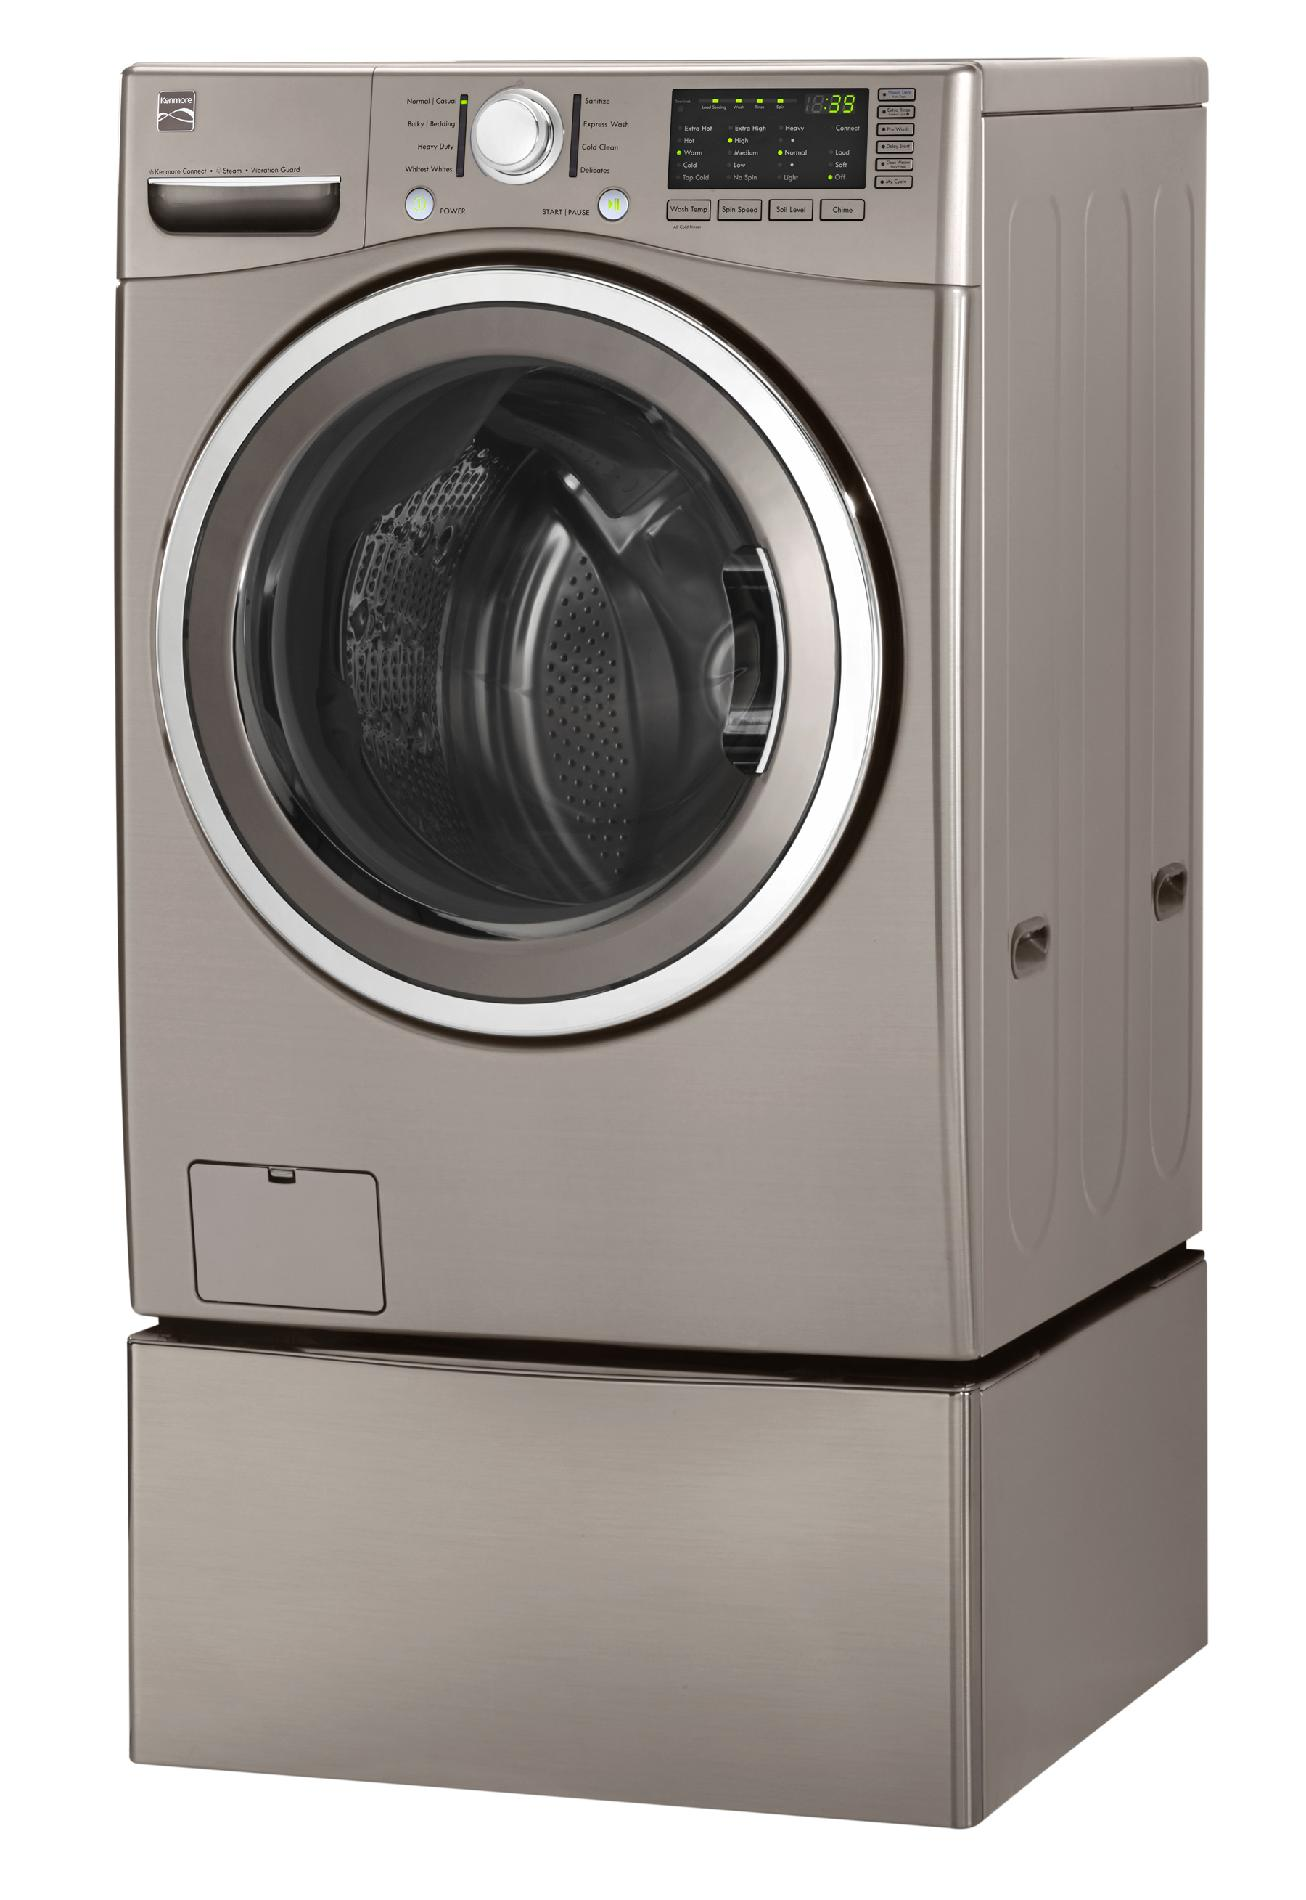 Kenmore 4.0 cu. ft. Front-Load Washer w/ Steam - Metallic Silver